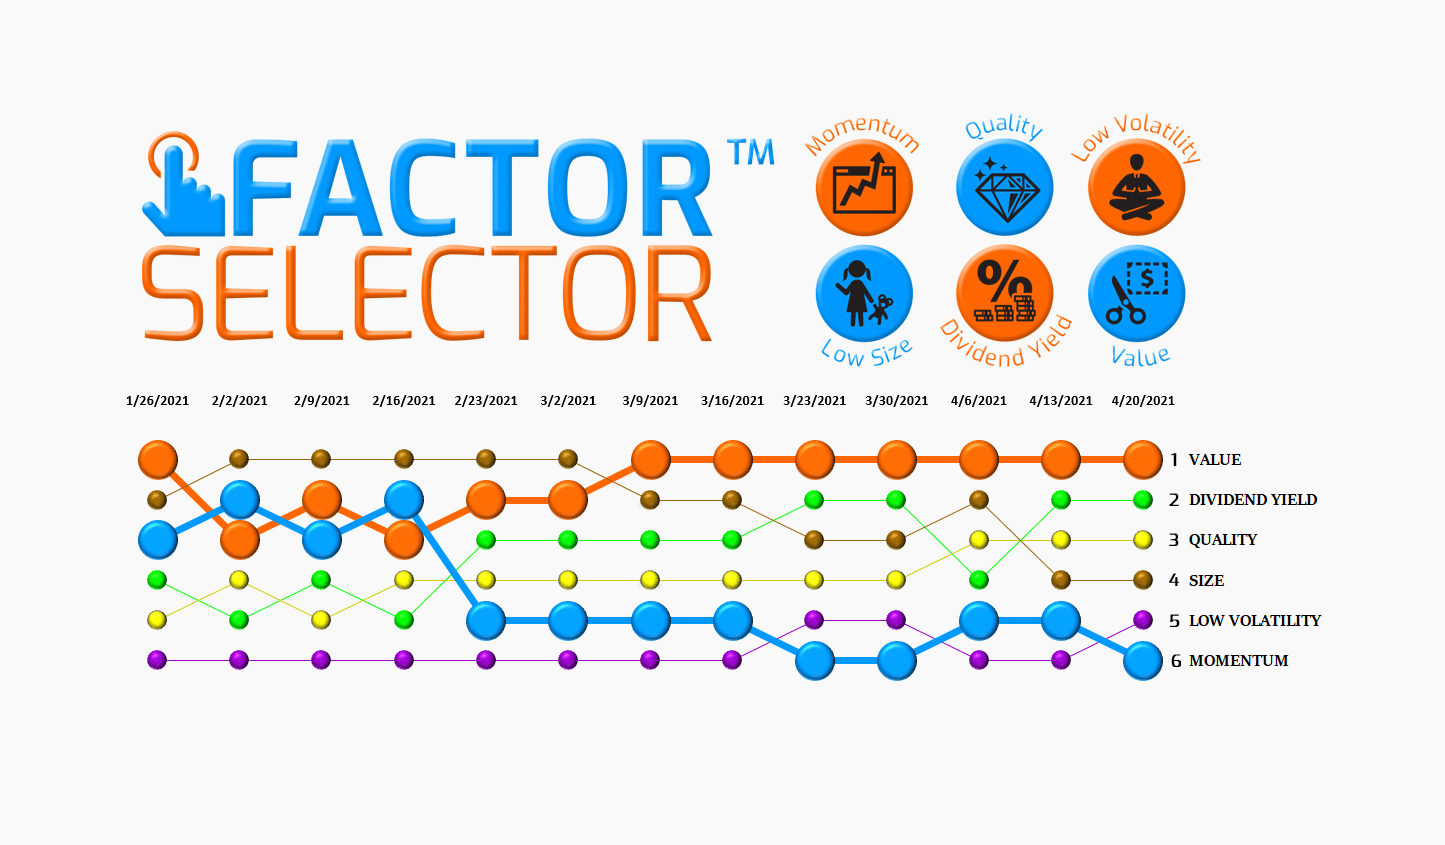 Factor Selector™  – 04/21/21 via @https://www.pinterest.com/market_scholars